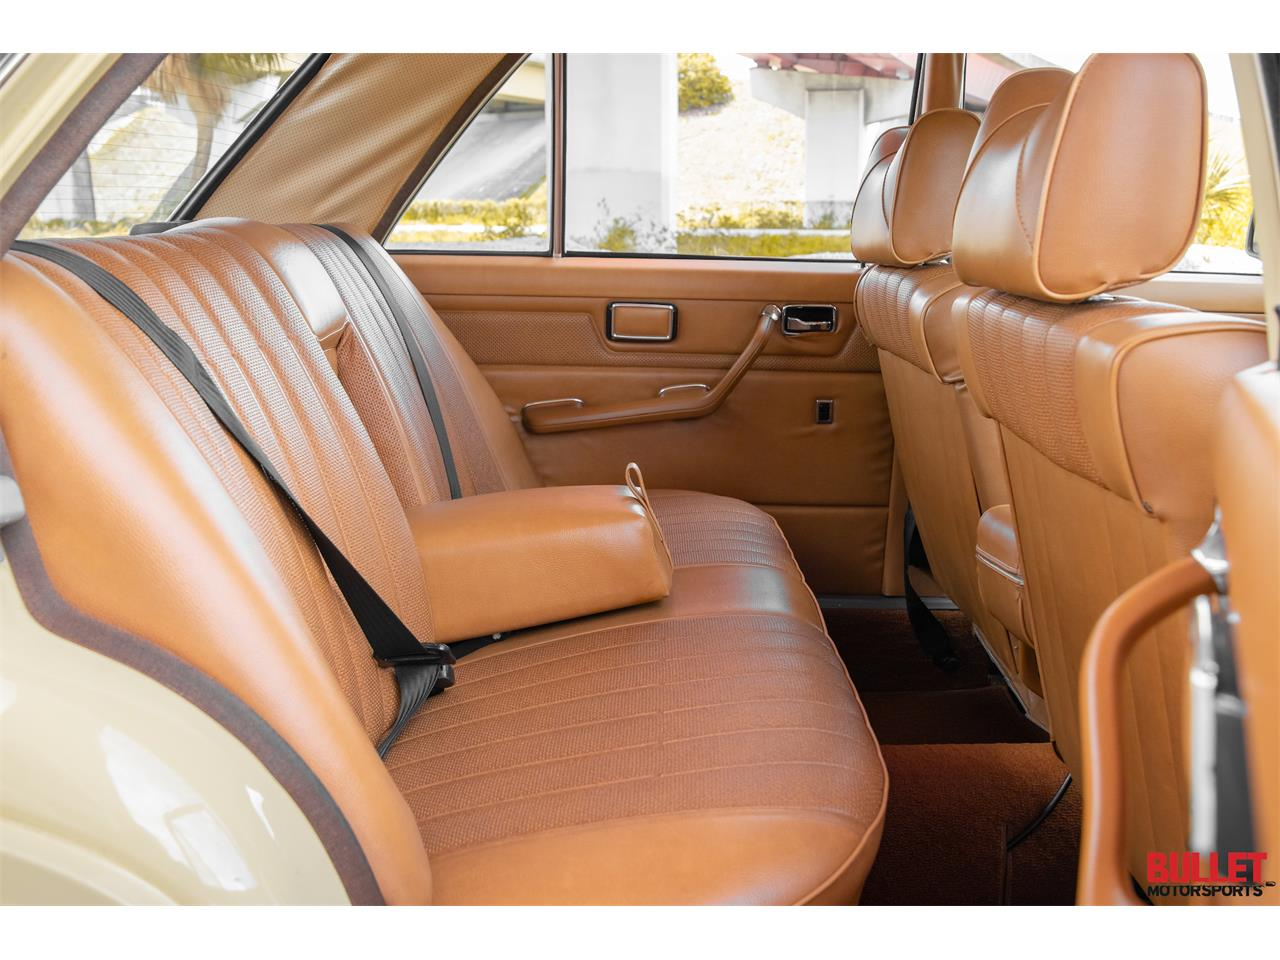 Large Picture of 1976 Mercedes-Benz 300D located in Florida - $9,000.00 - PXPA